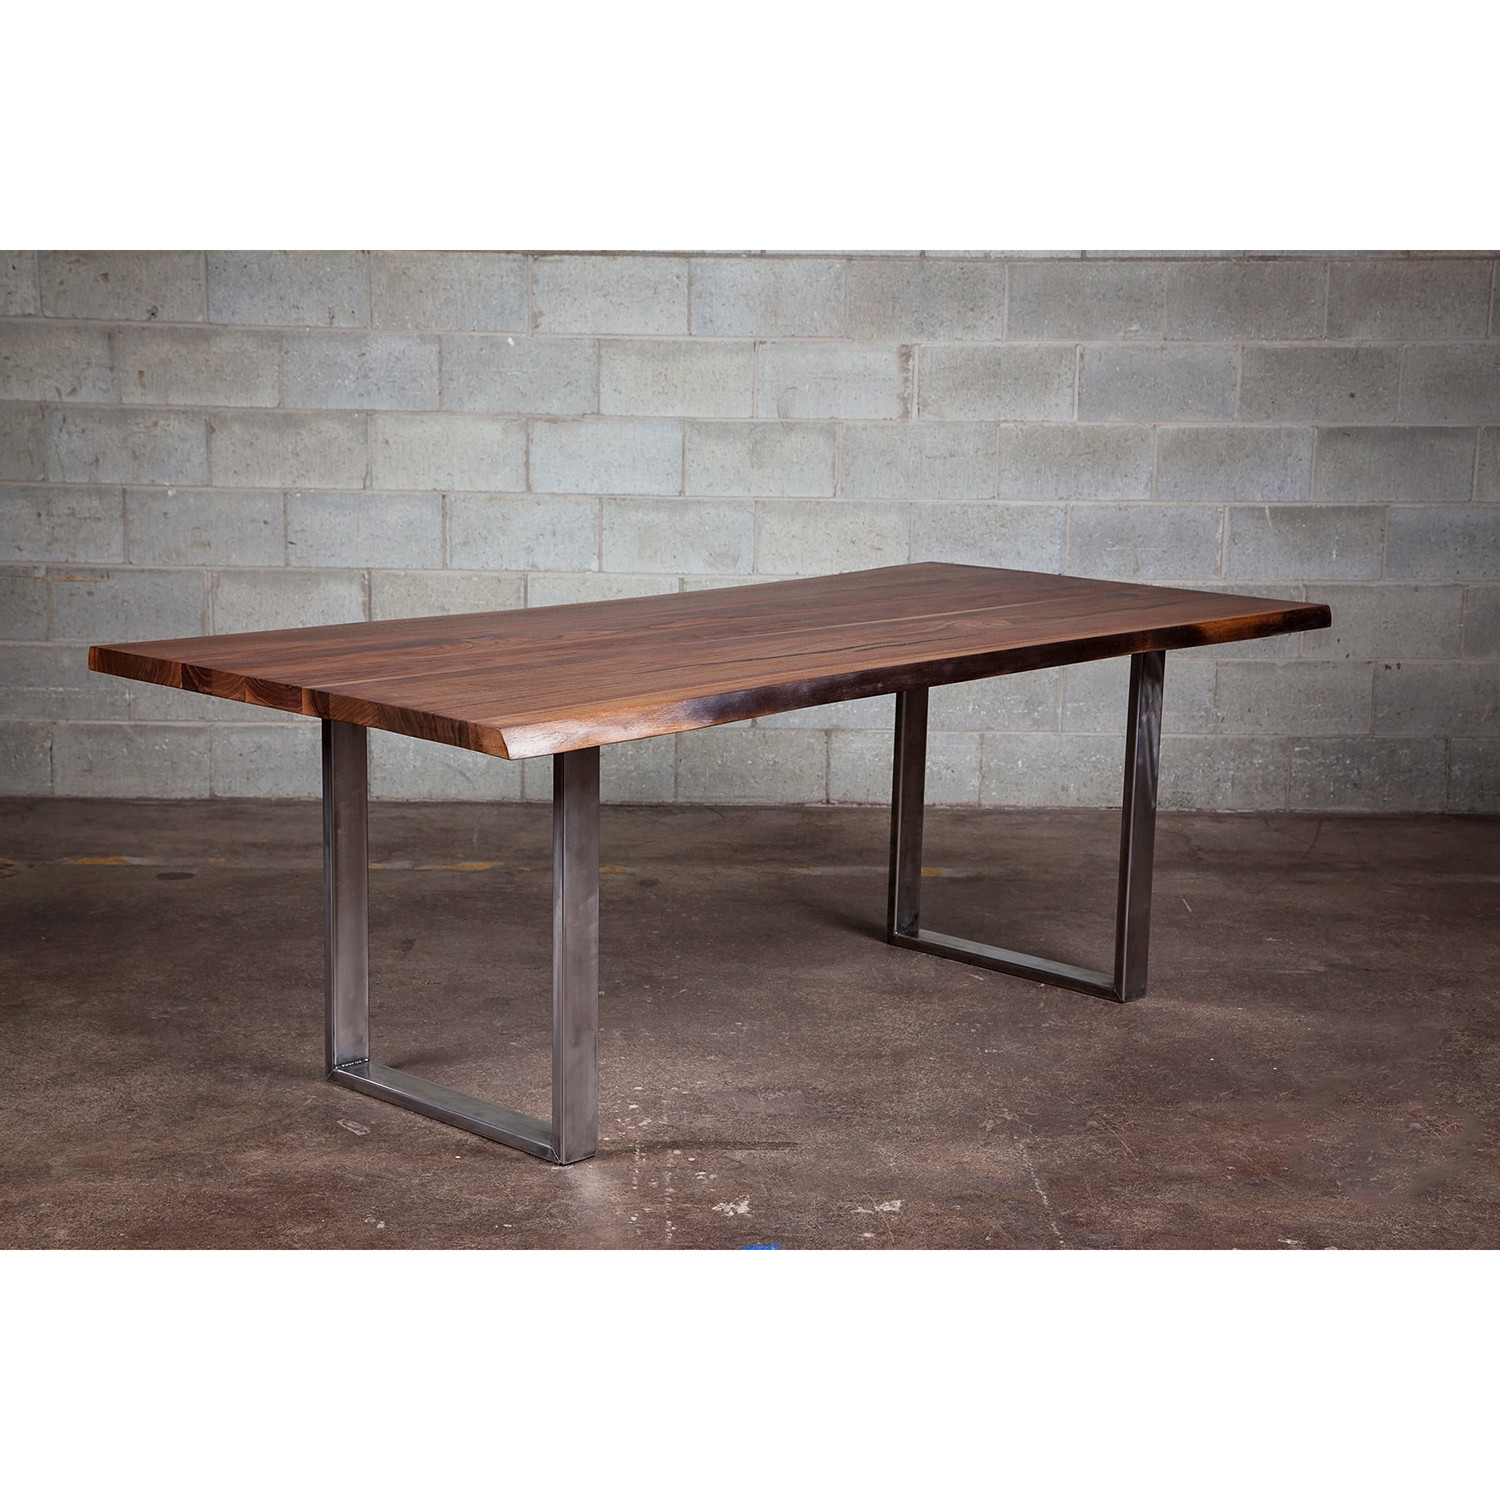 Dining table live edge black walnut steel legs 72 l for Grande table bois